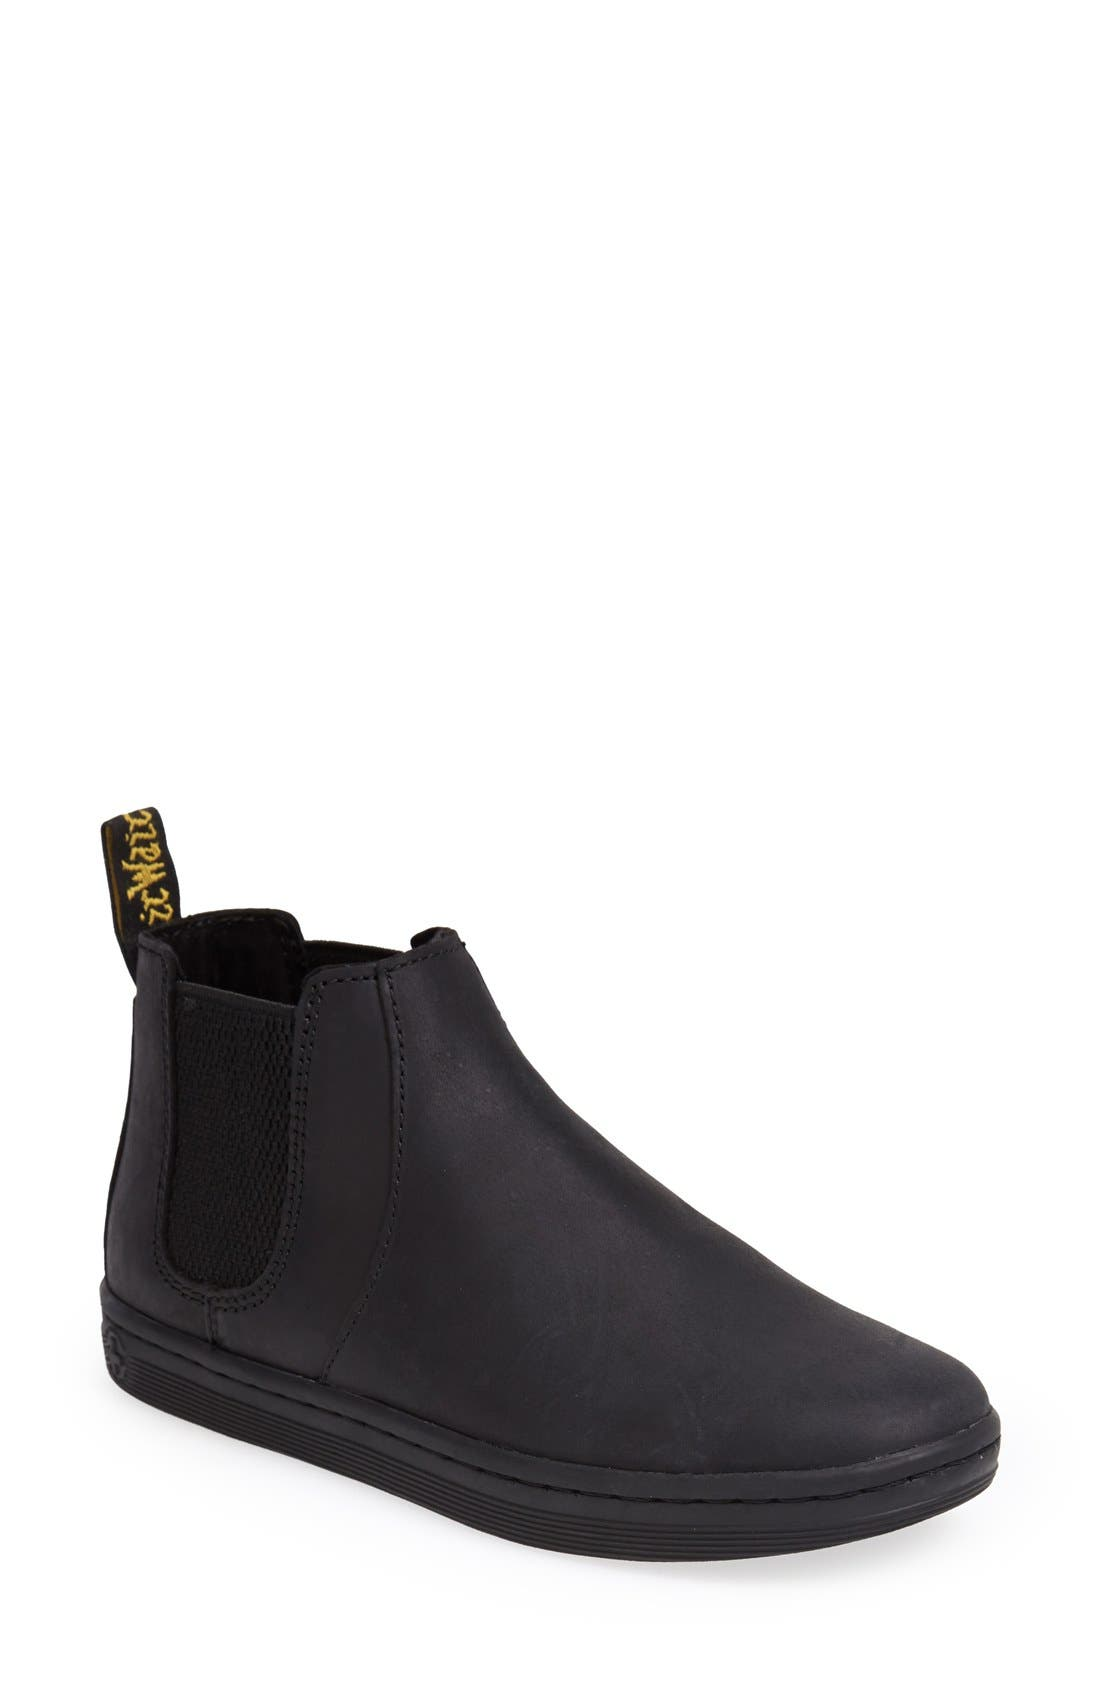 'Katya' Chelsea Boot,                             Main thumbnail 1, color,                             001